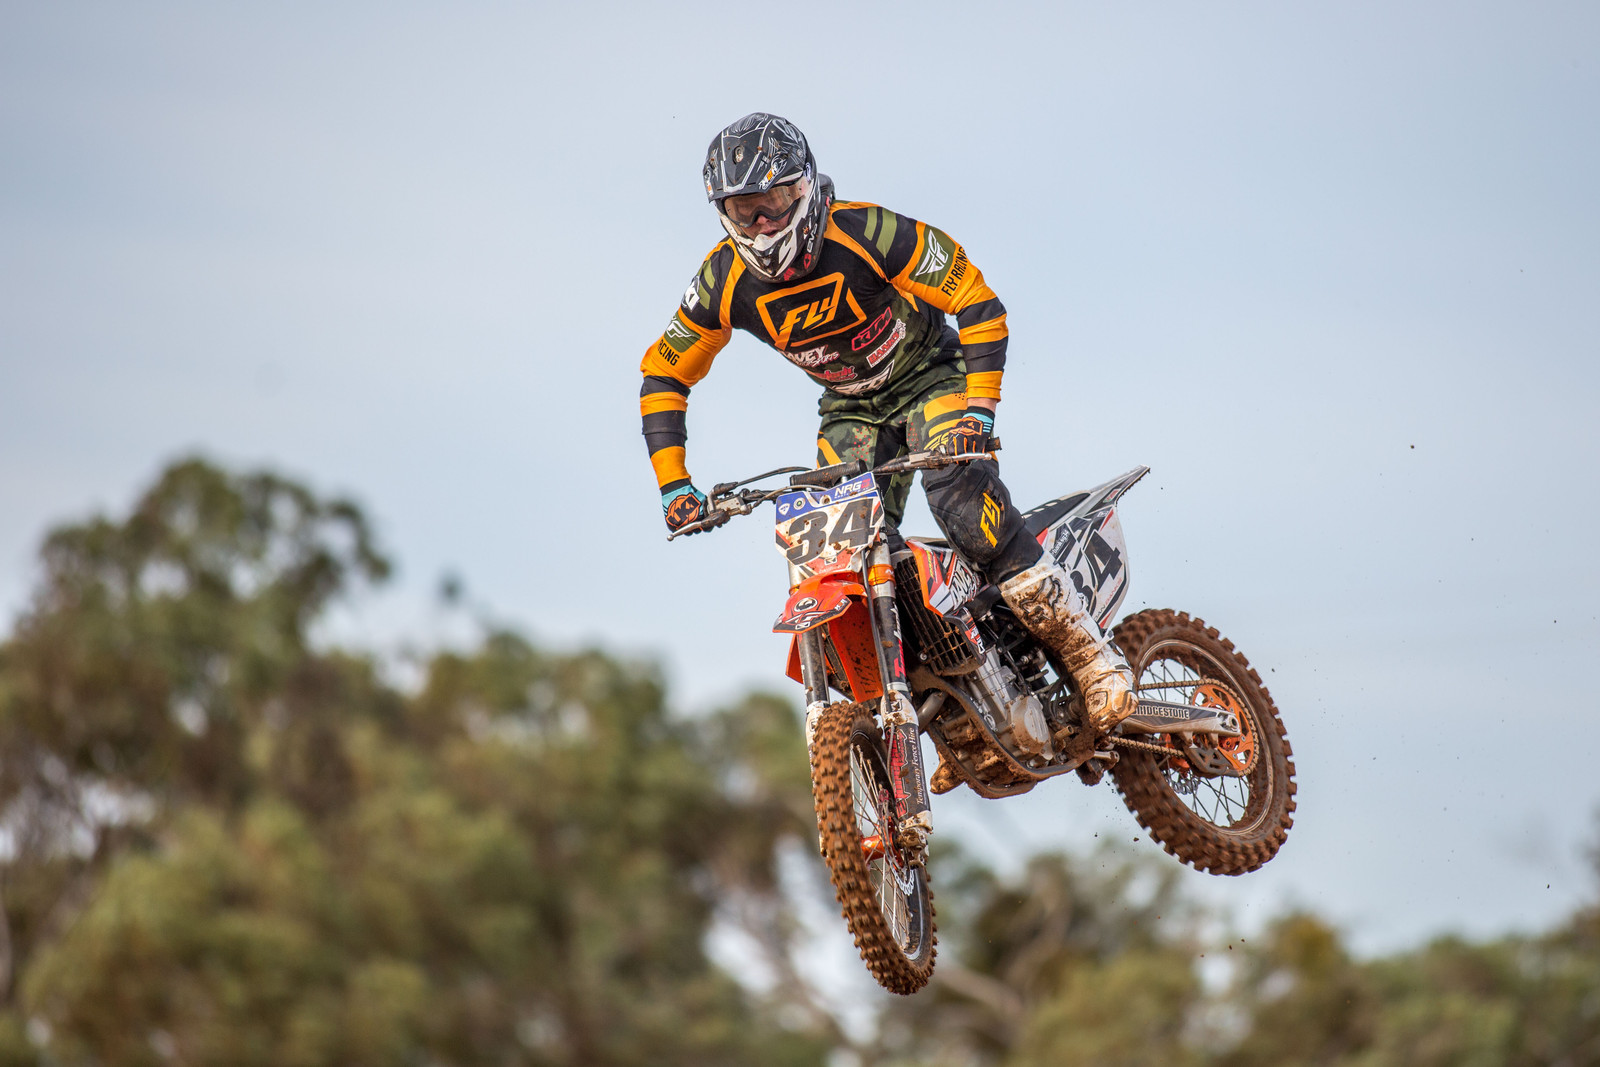 Daniel Banks - Australian Motul Mx Championships: Round 4, Murray Bridge - Motocross Pictures - Vital MX